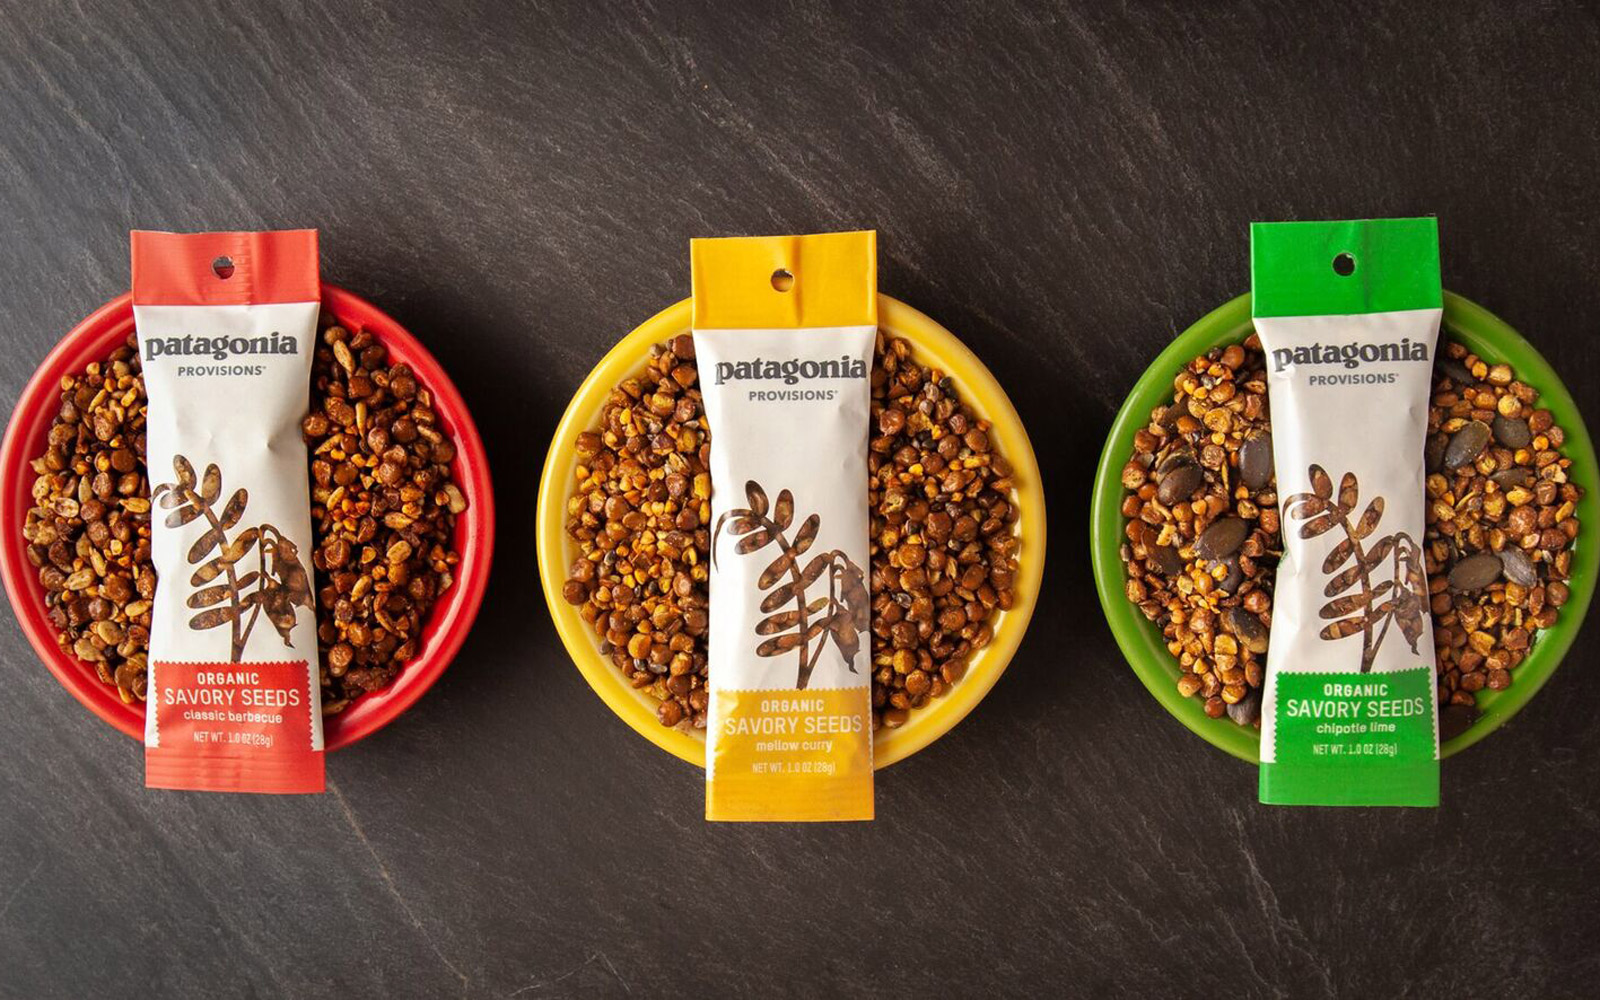 patagonia provisions savory seeds